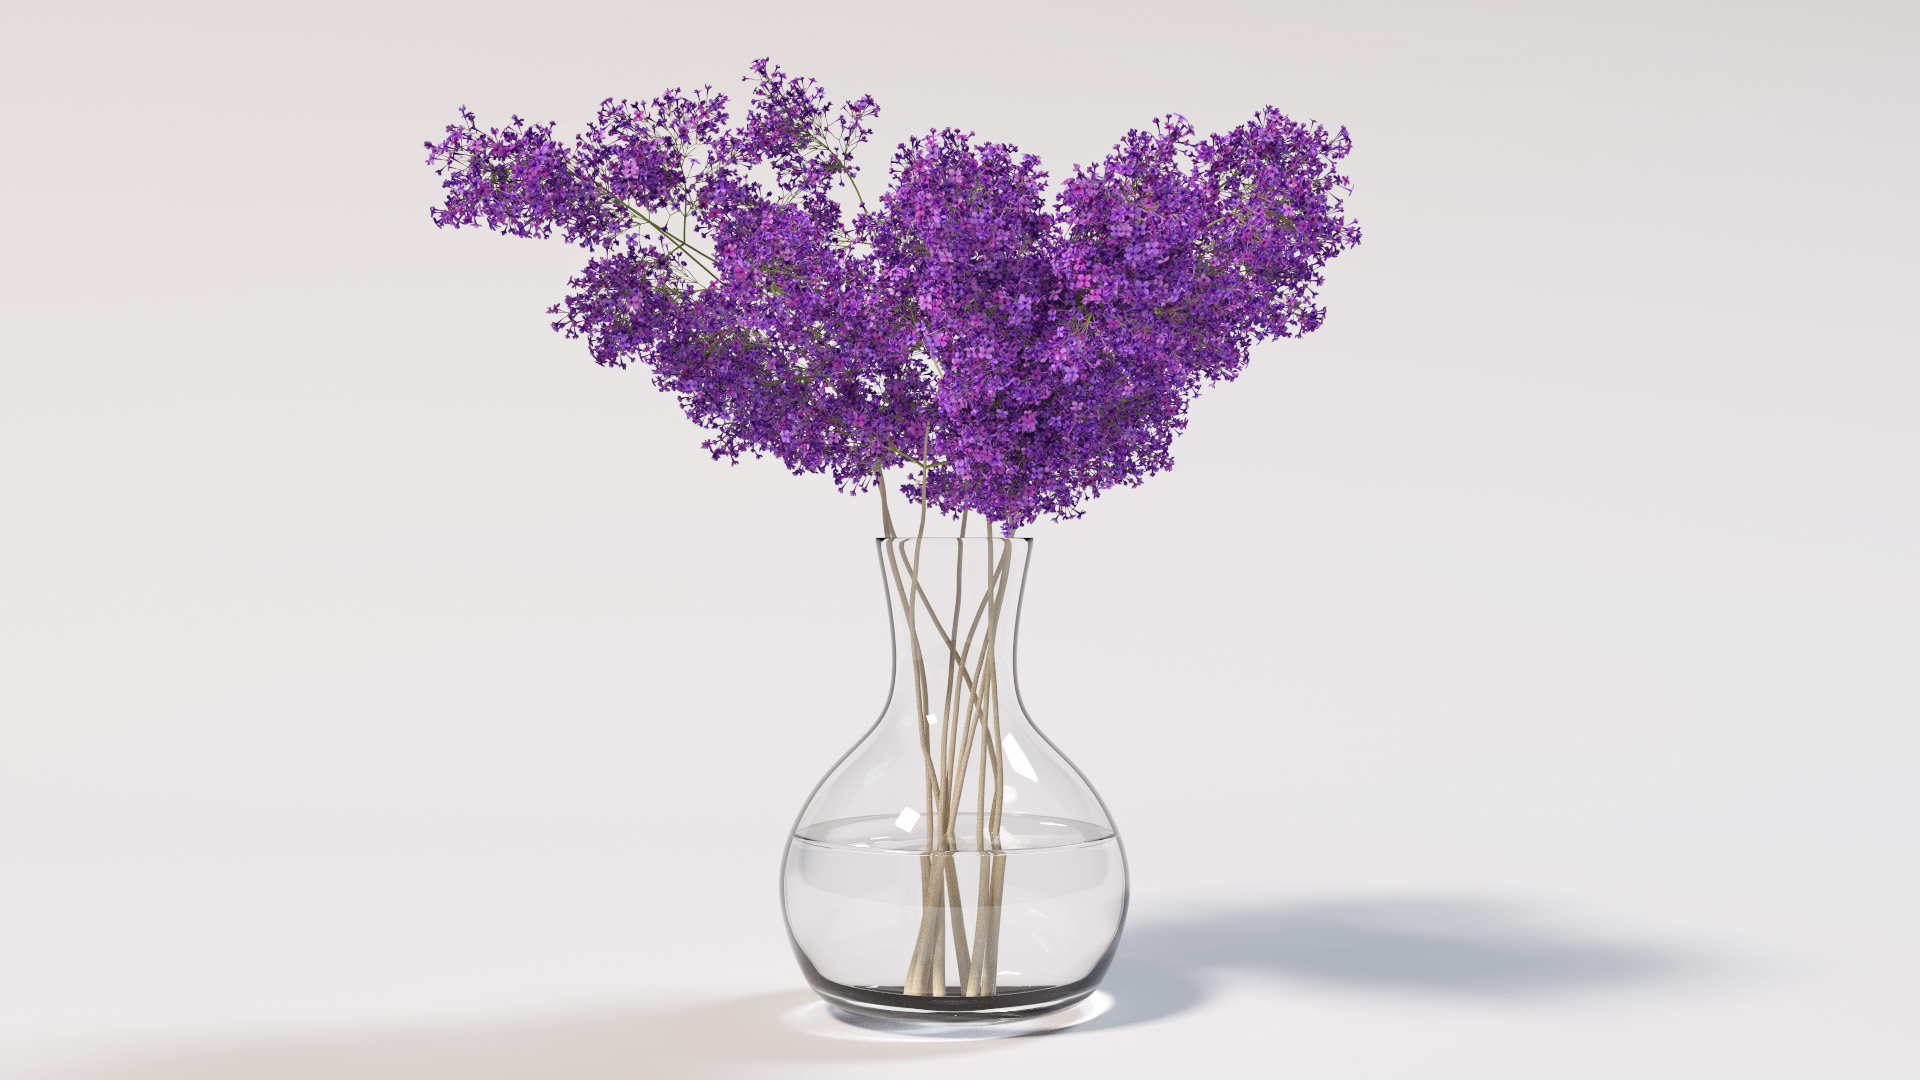 Note The Complex Caustics From The Vase - PNG HD Vase Of Flowers